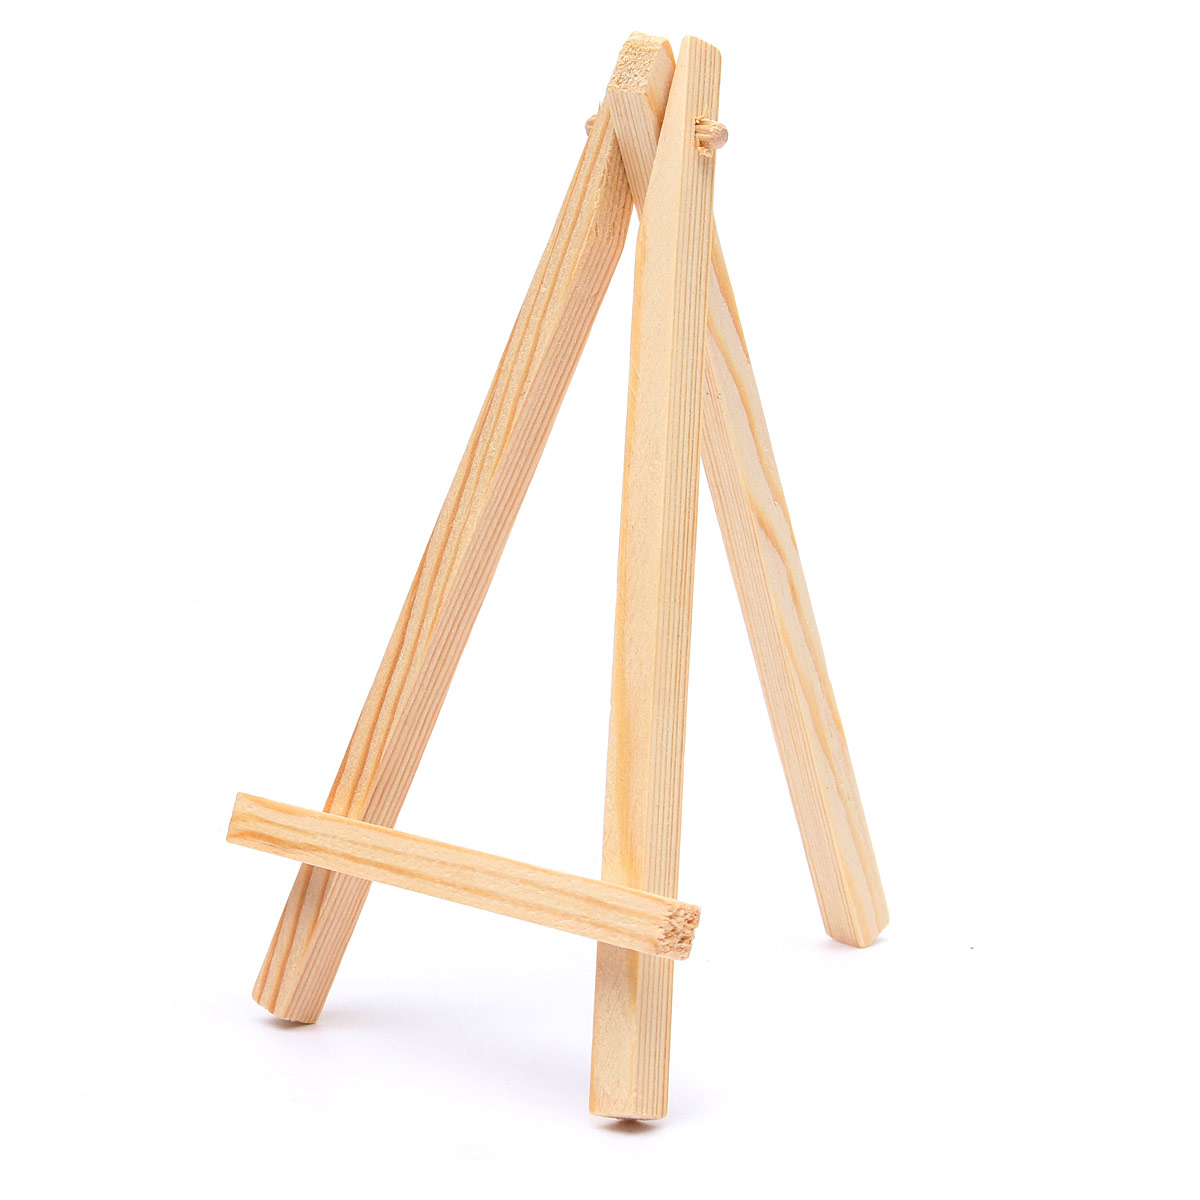 Kicute Wood Artist Easel Wedding Table Number Place Name Card Photos Stand Display Holder Diy Party Tools In Note From Office